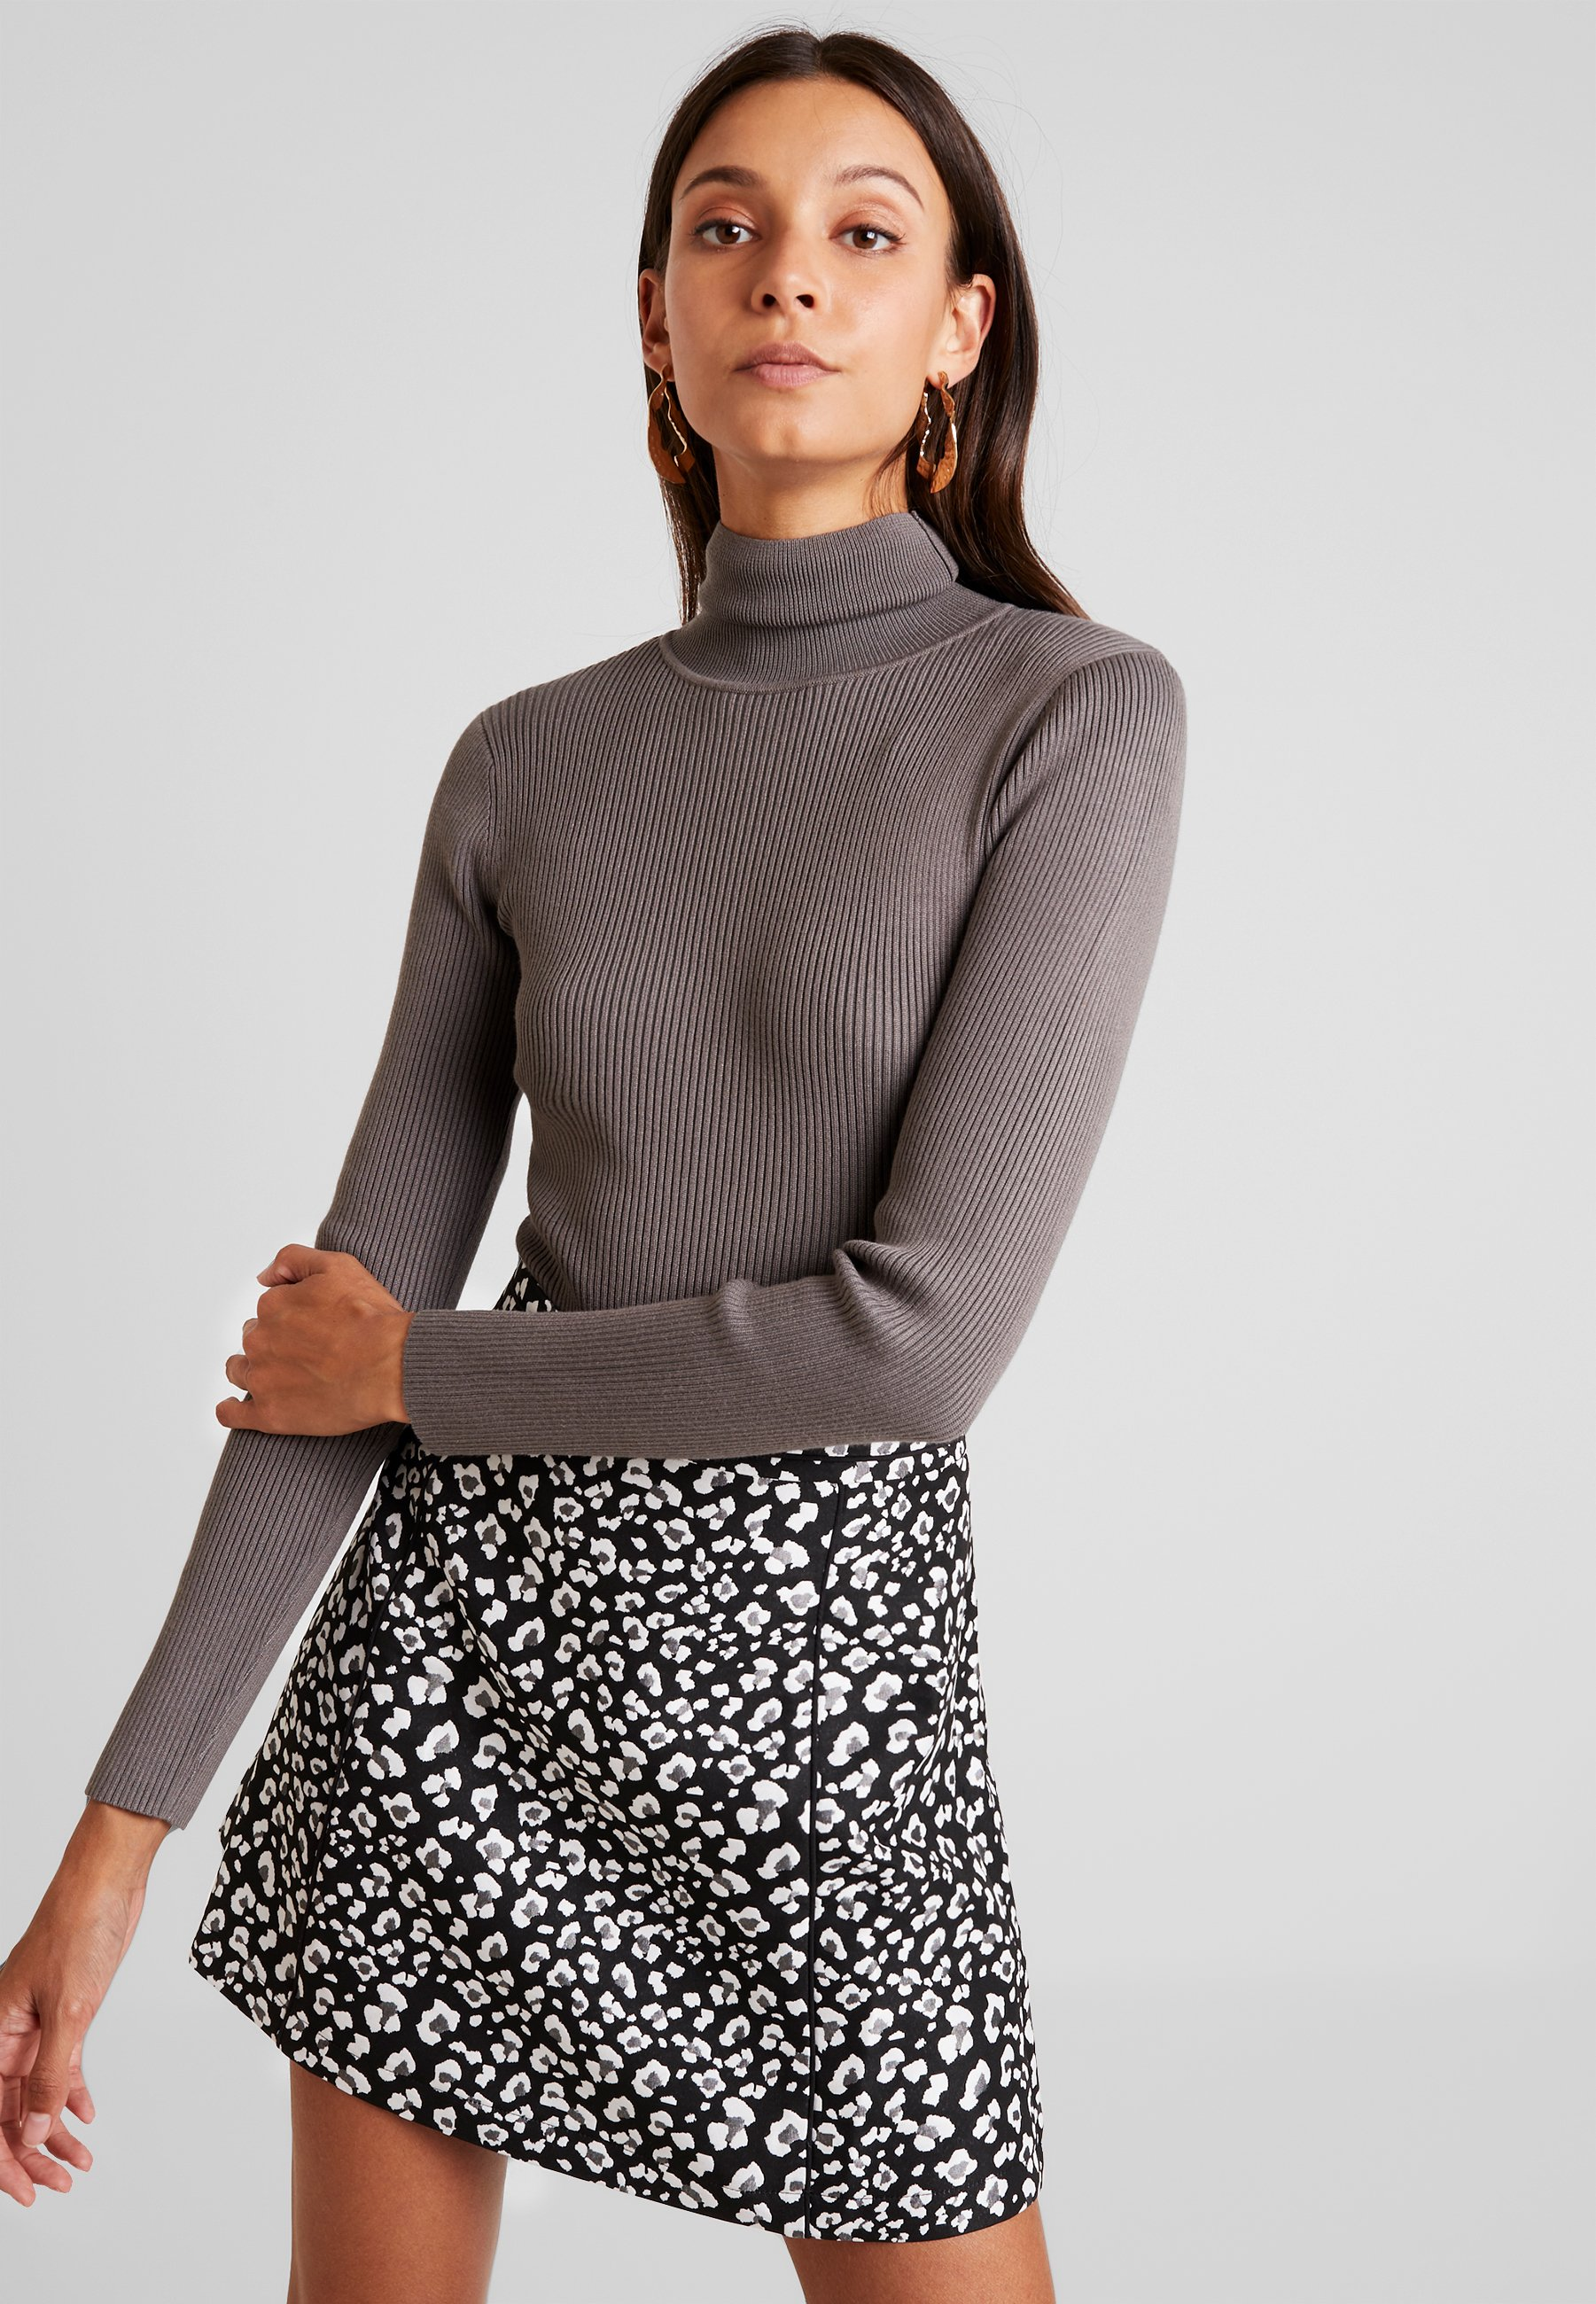 Neck Charcoal BodyPullover Missguided Missguided BodyPullover Missguided Charcoal Roll Roll Neck Neck BodyPullover Roll OnPN80wXk